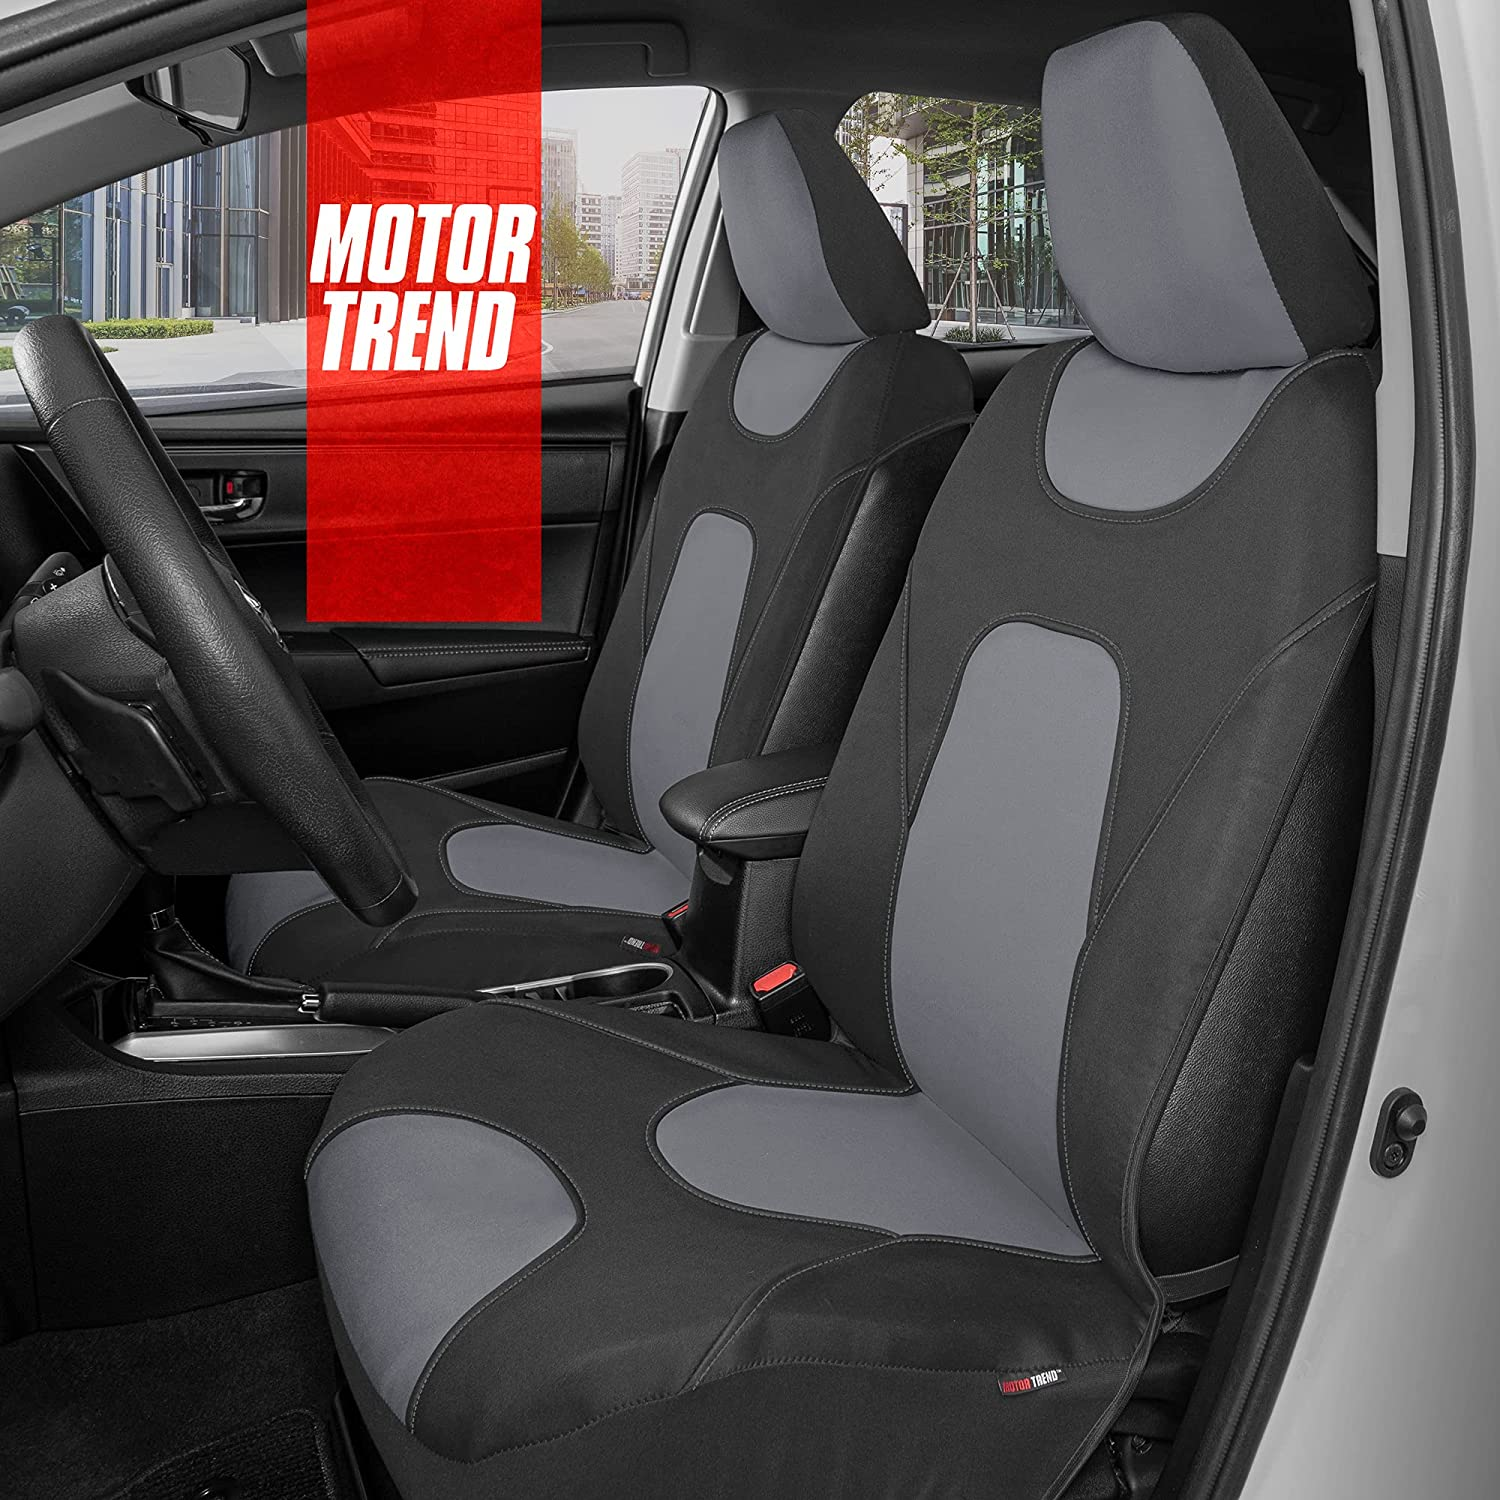 Motor Trend AquaShield Car Seat Covers for Front Seats, Gray – 3 Layer Waterproof Seat Covers, Neoprene Material with Modern Sideless Design, Universal Fit for Auto Truck Van SUV